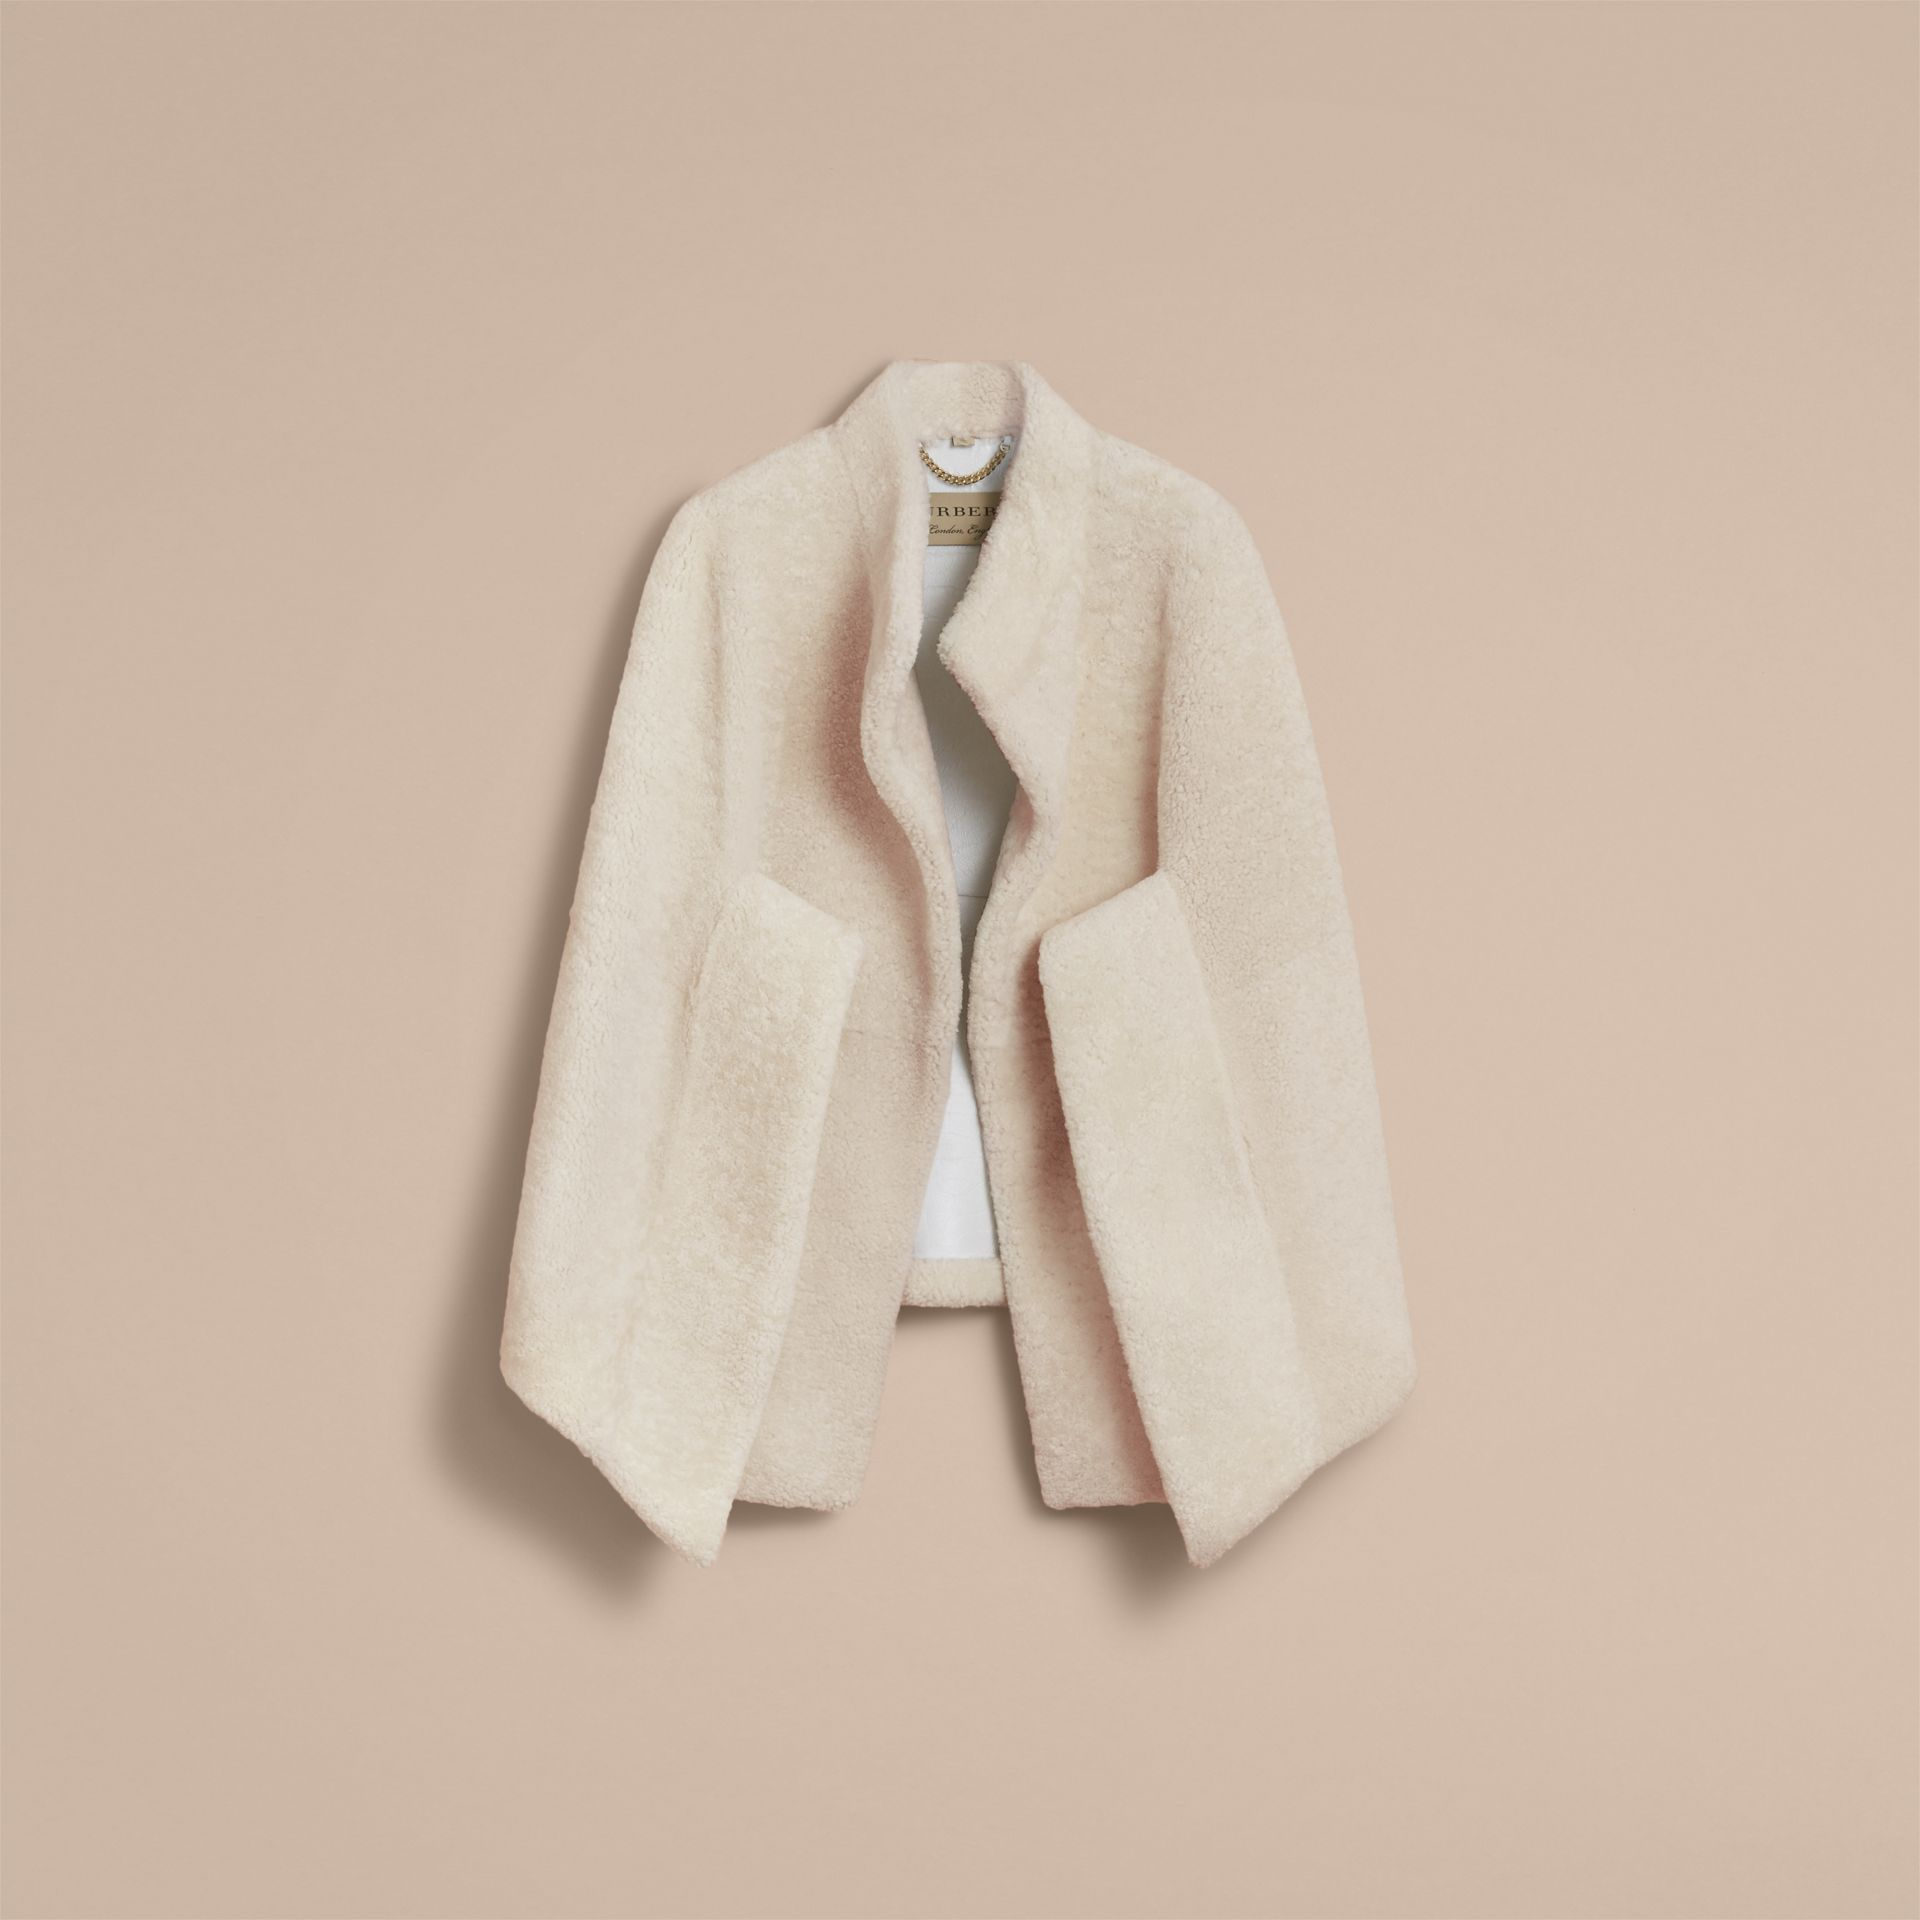 Sculptural Shearling Cape in White - Women | Burberry Canada - gallery image 4